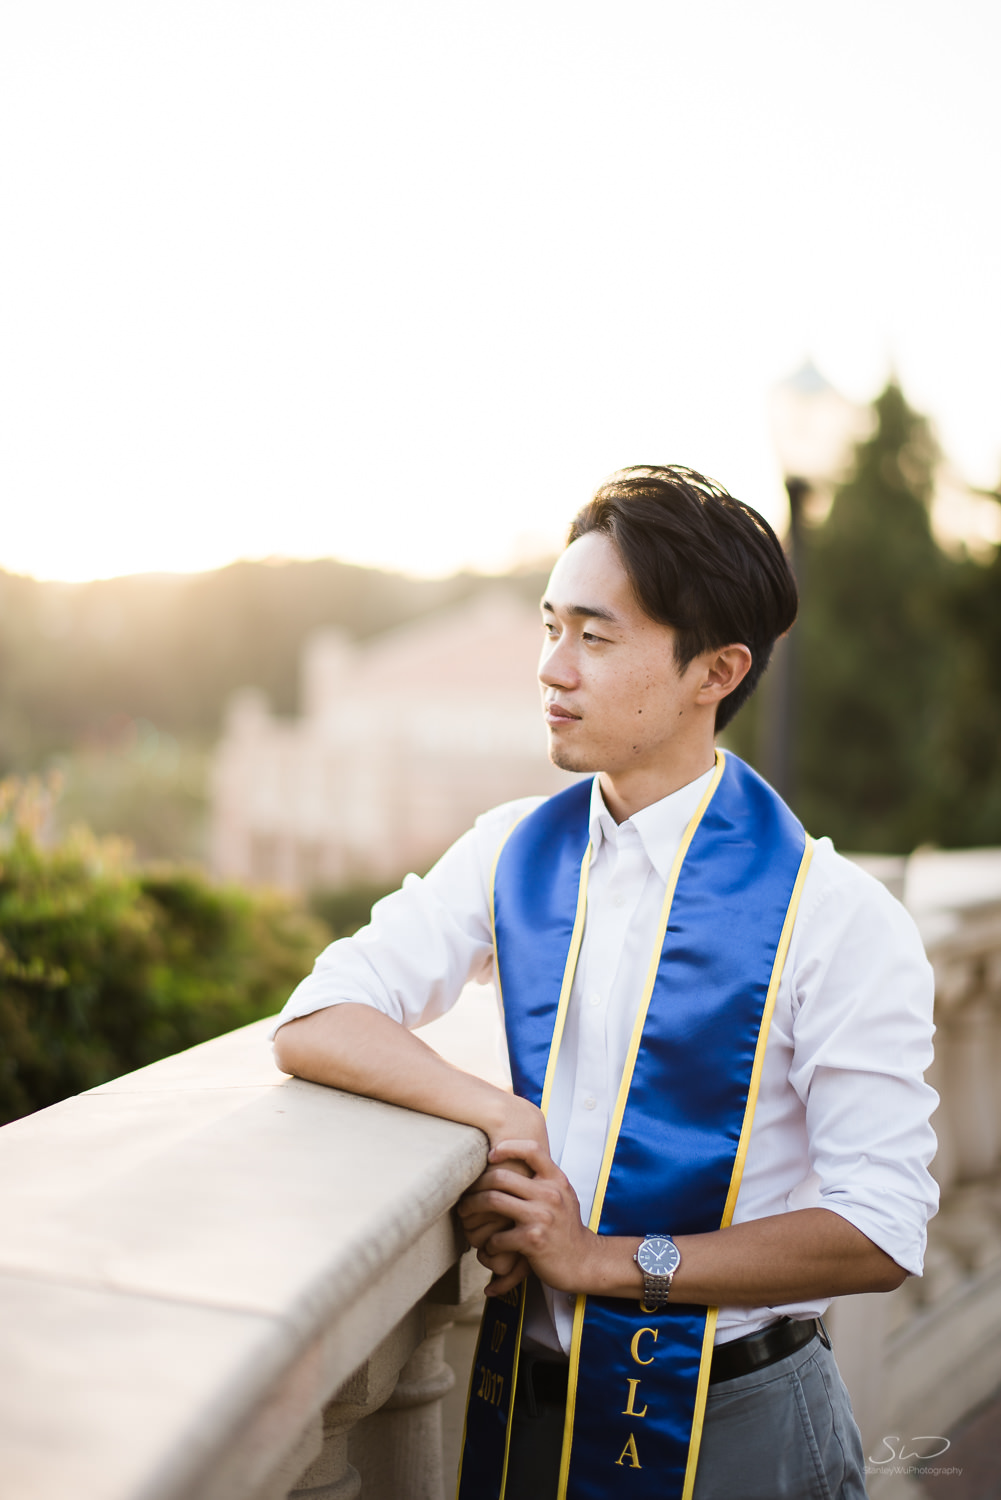 Copy of Copy of beautiful sunset portrait of college guy looking off into distance | Stanley Wu Photography | Los Angeles | Graduation Portraits | UCLA, USC, LMU, Pepperdine, CSULA, CSUN, CSULB, UCI, UCSD